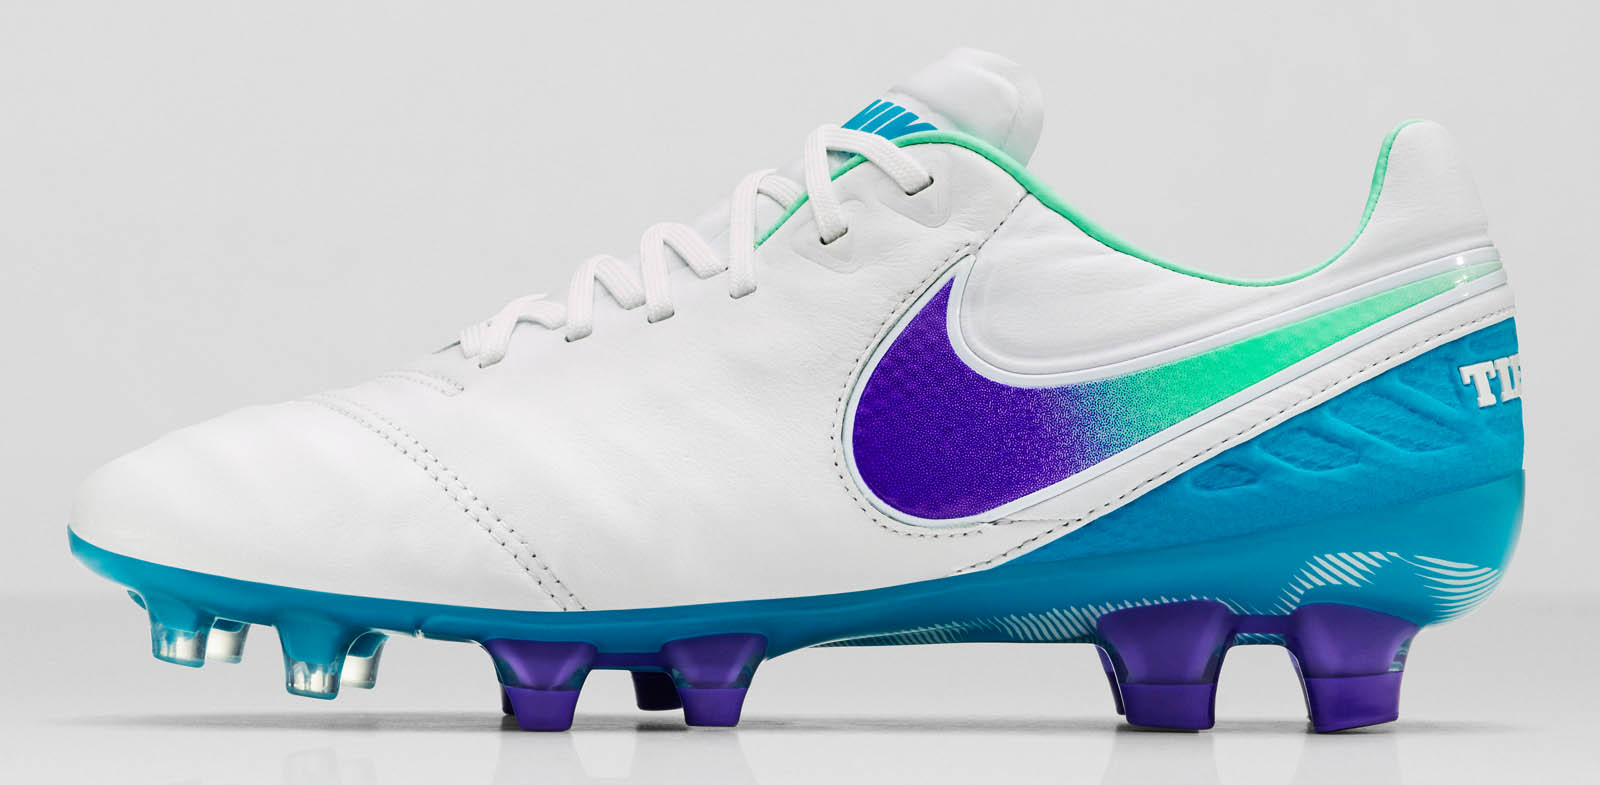 bold nike tiempo legend 6 2016 boots released footy. Black Bedroom Furniture Sets. Home Design Ideas